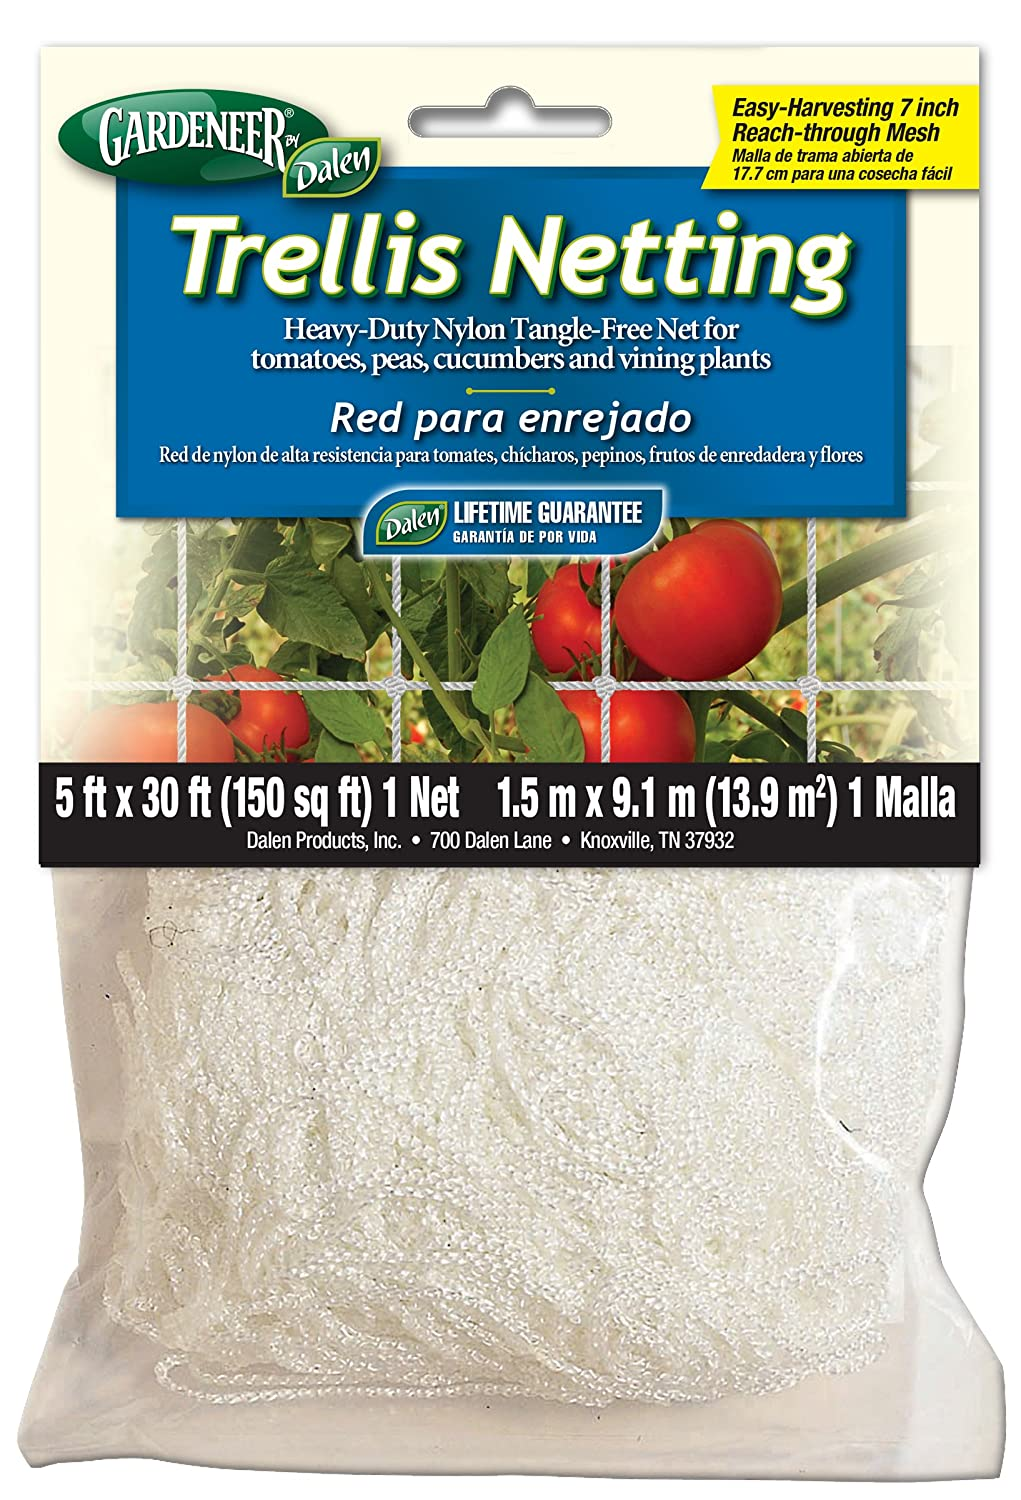 Dalen 100055887 756635701002 Gardeneer by Trellis Heavy-Duty Nylon Tangle-Free Net 5', 30 ft